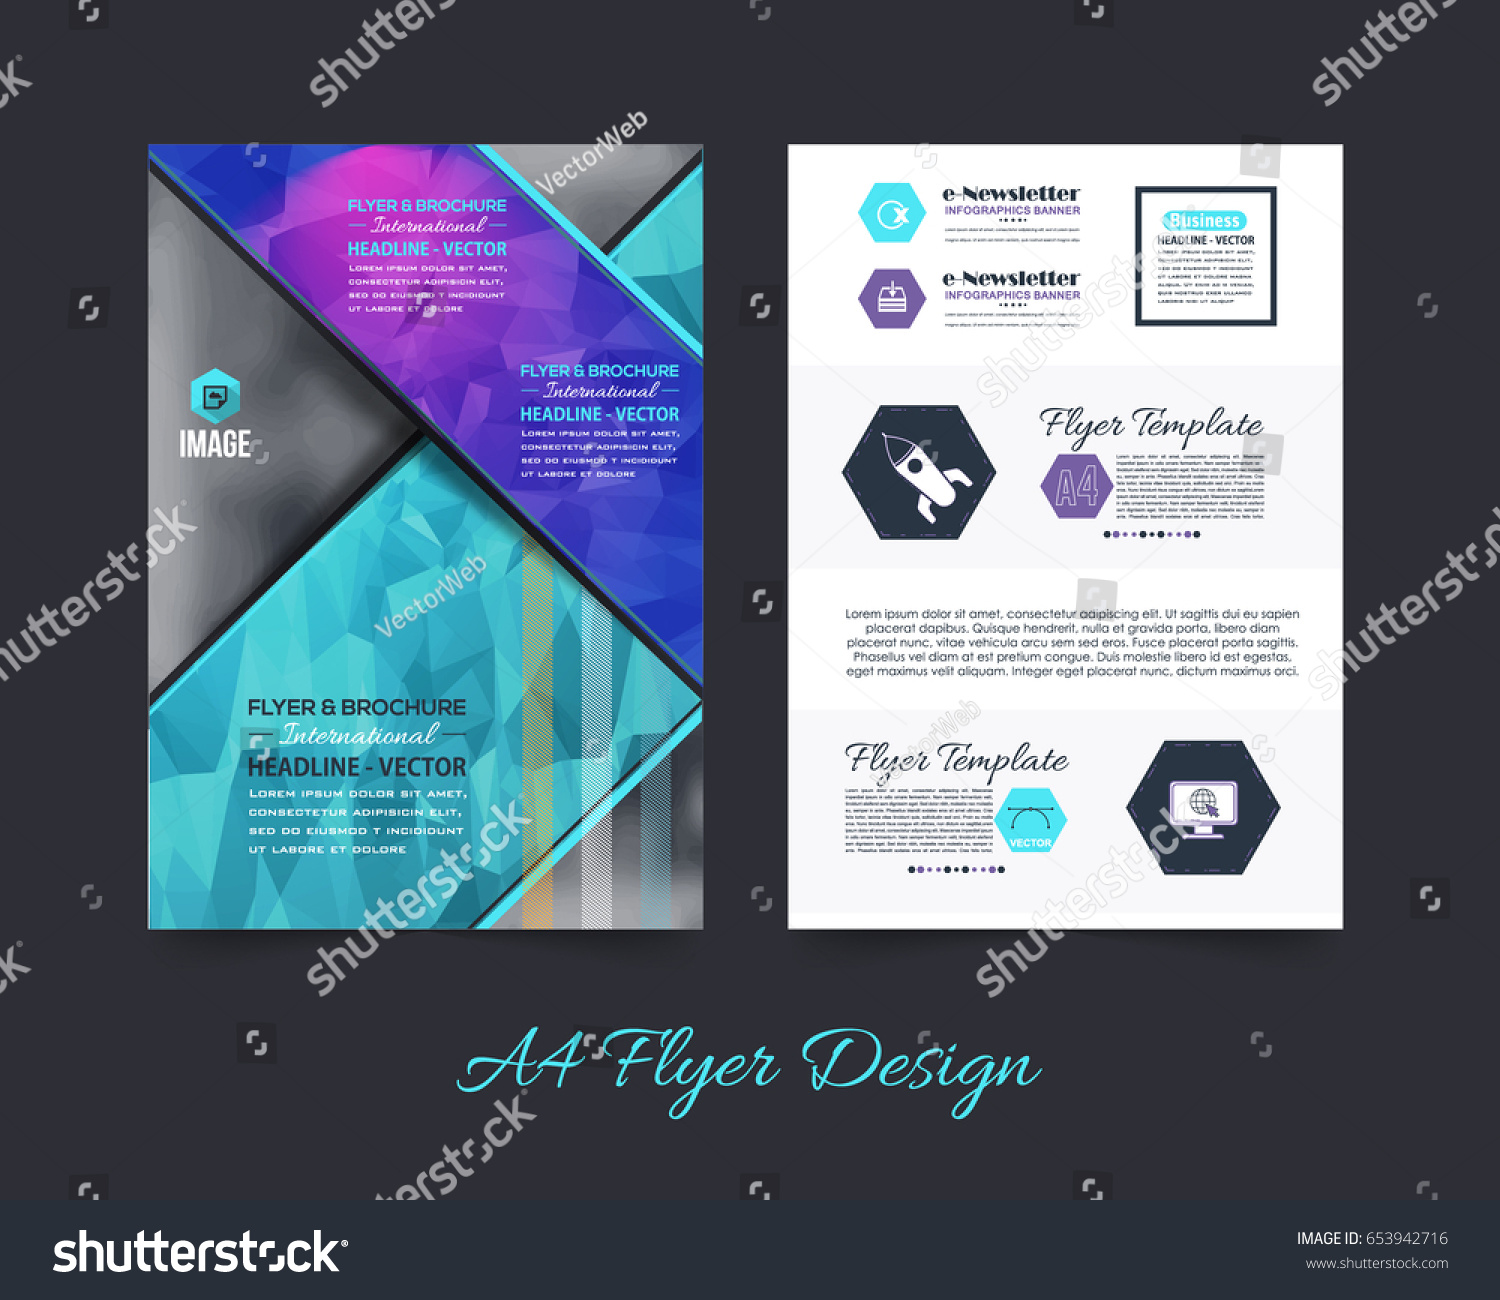 Business pamphlet polygonal booklet template a 4 stock vector business pamphlet or polygonal booklet template a4 document and vector background flyer geometric low wajeb Image collections